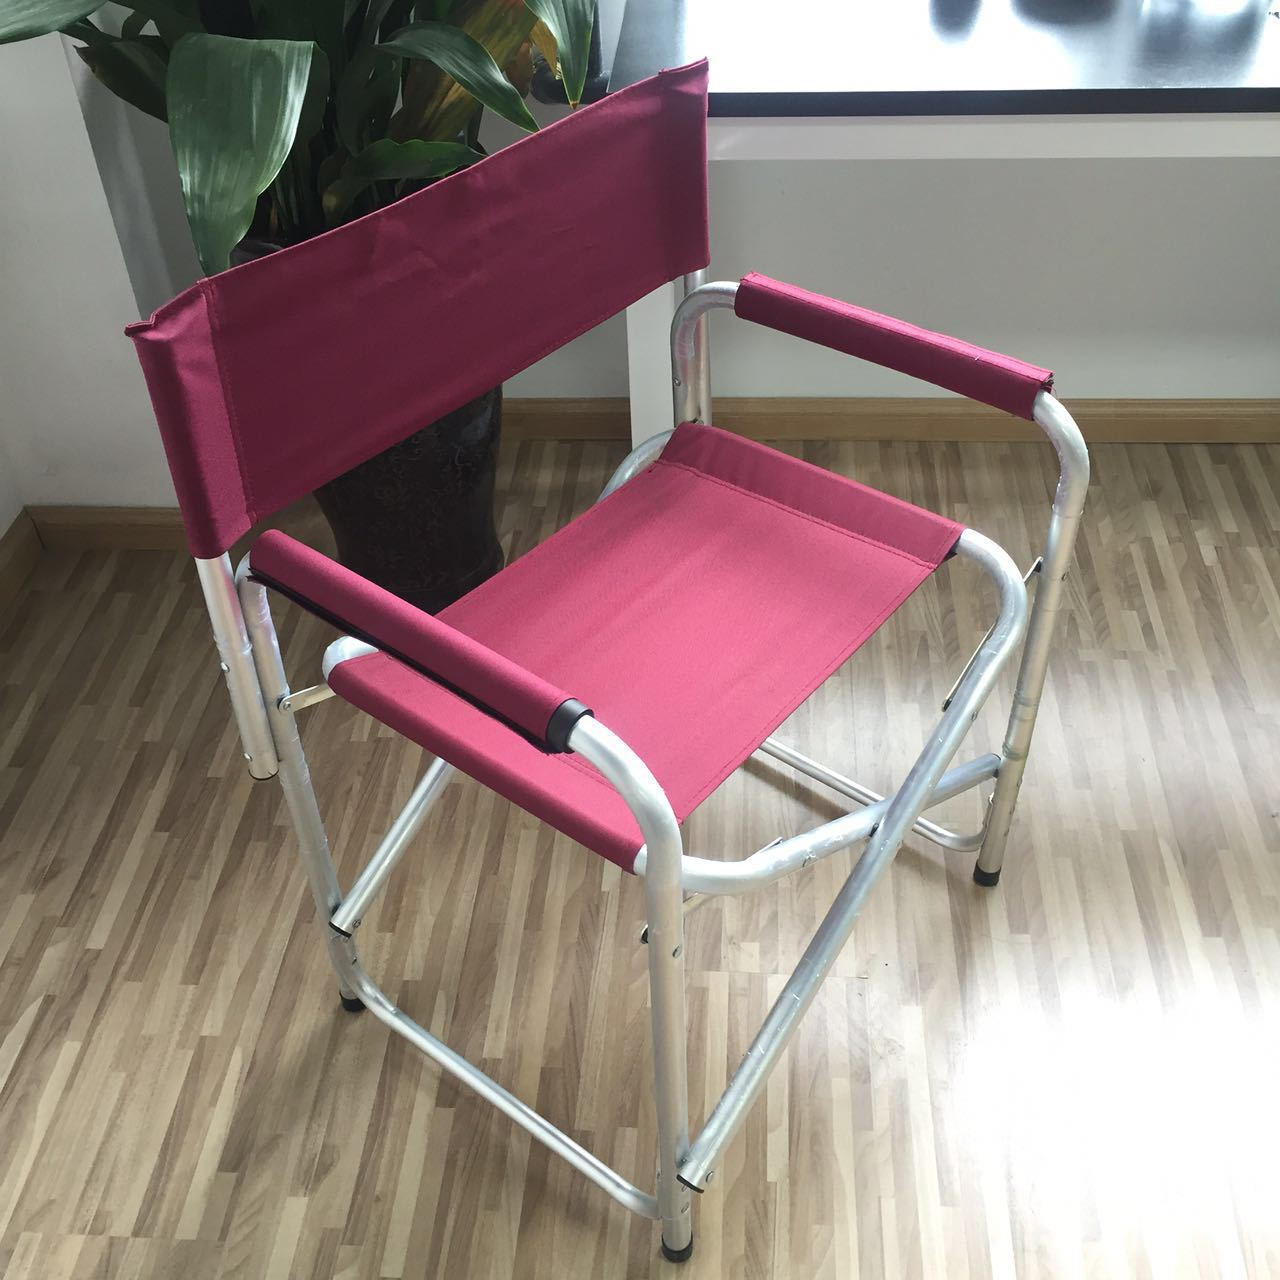 Camping Aluminium Alloy Director's Chair Outdoor Folding Tables And Chairs Foreign Trade Aluminum Alloy Folding Chair Fishing Ch